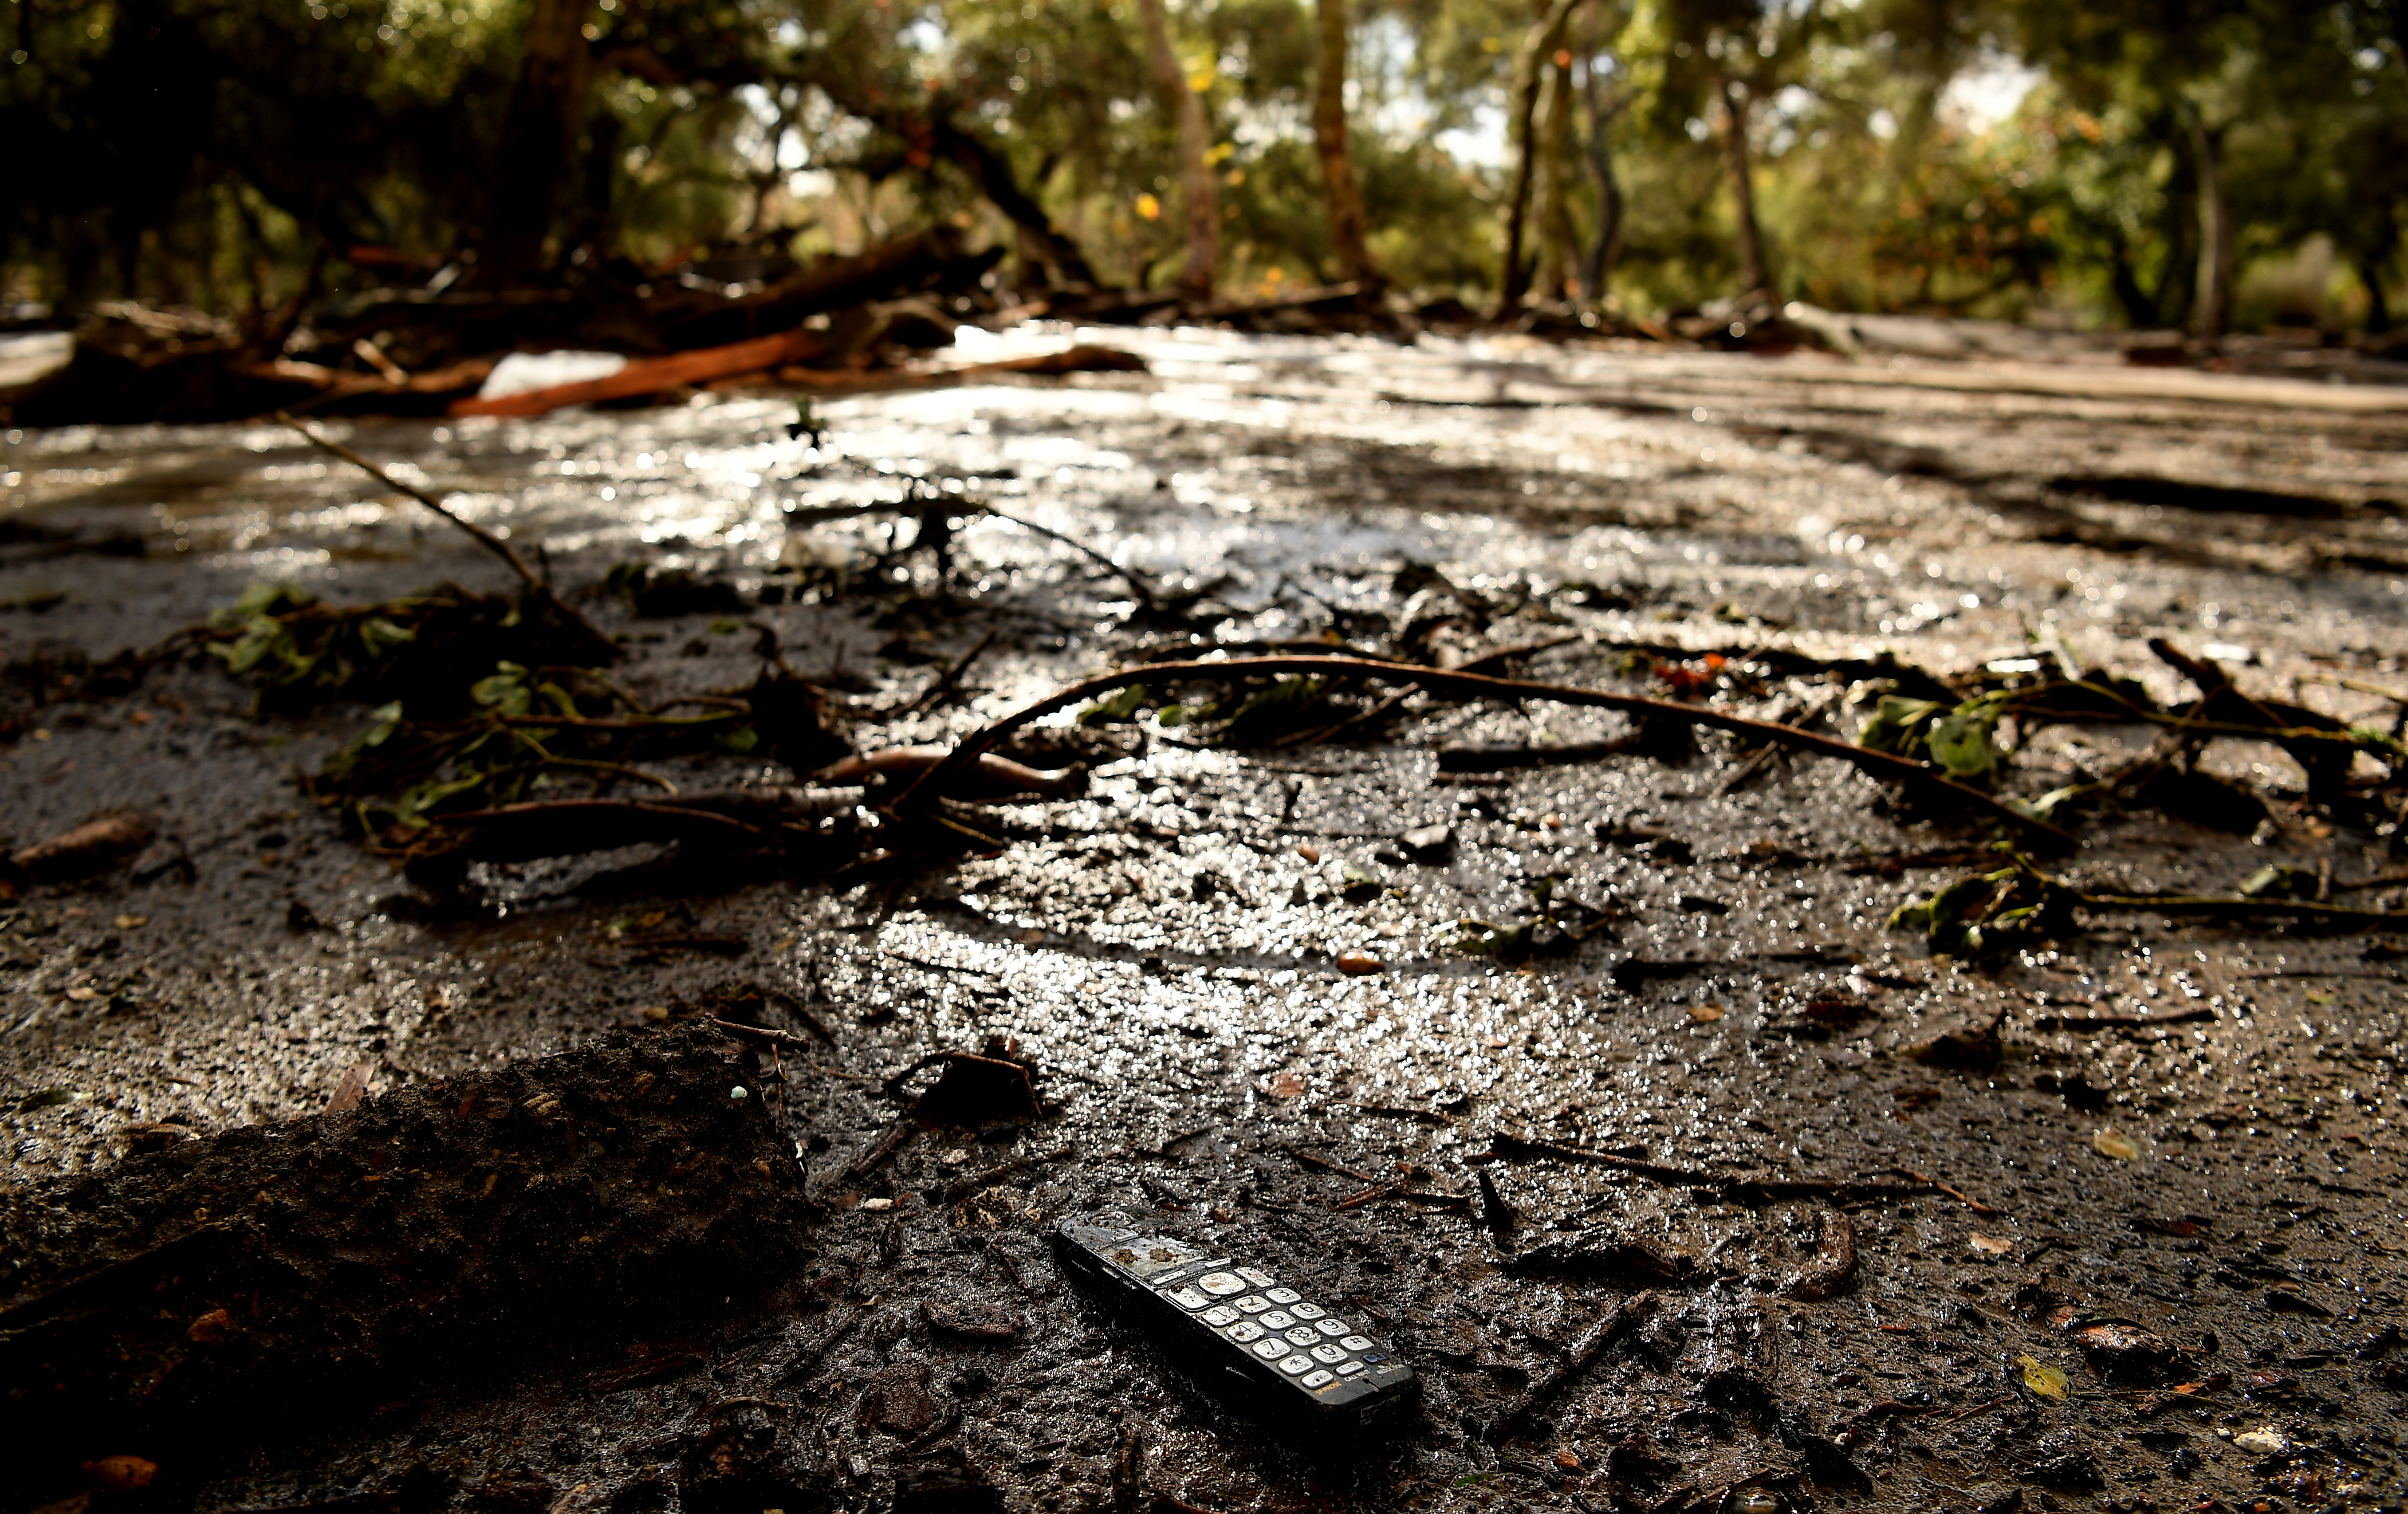 A remote sits in the mud along along Olive Mill Road in Montecito after a major storm hit the burn area January 9, 2018 in Montecito, California.